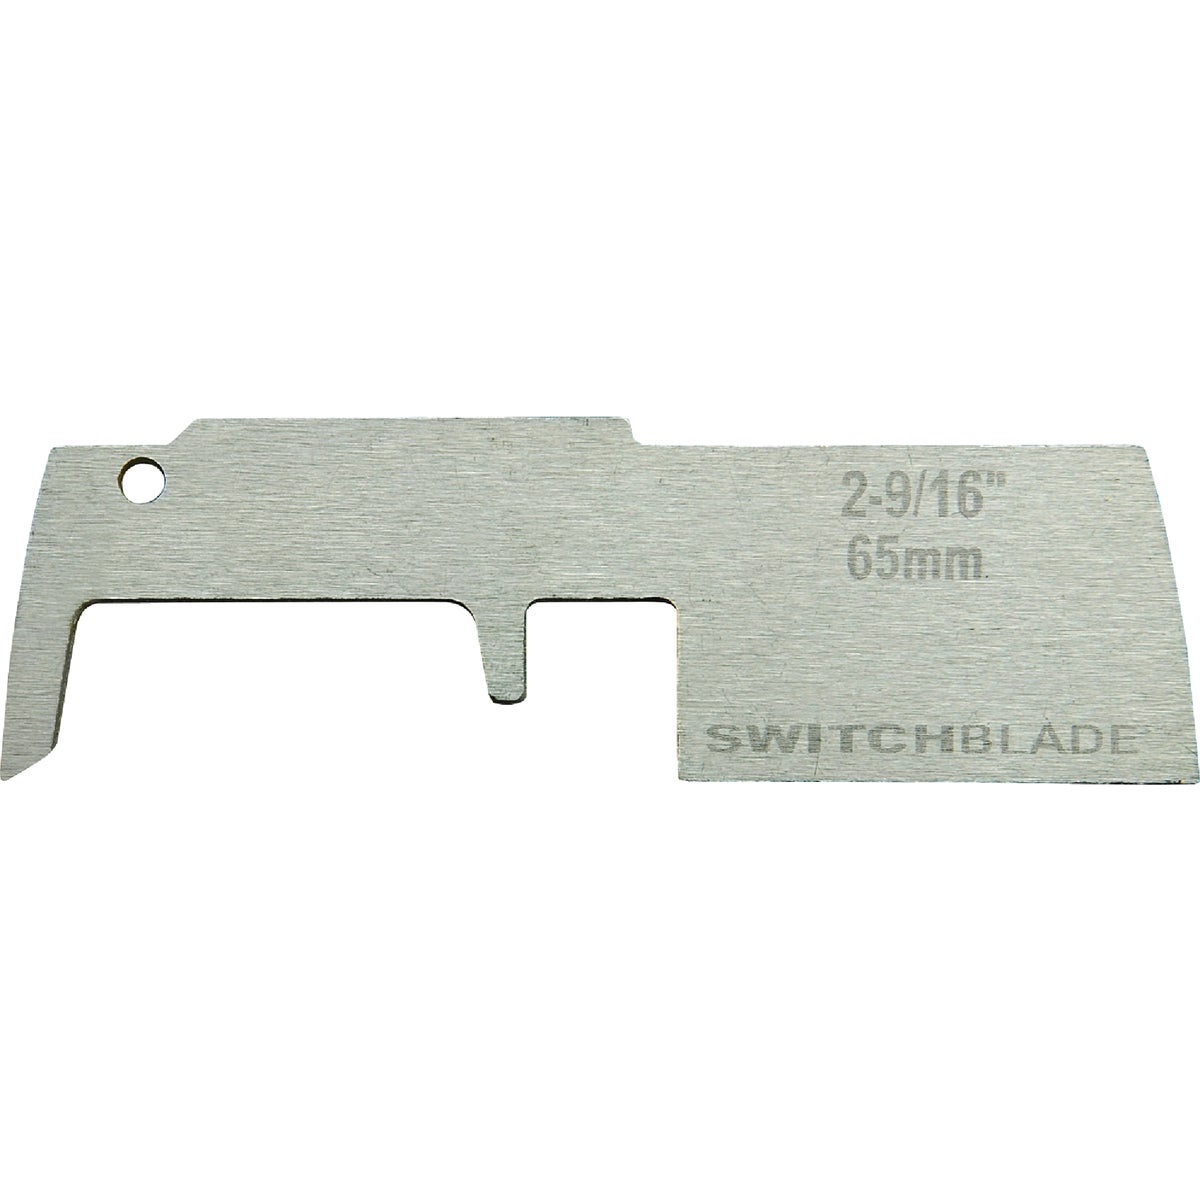 "1PK 2-9/16"" SWITCHBLADE - 48-25-5450 by Milwaukee Accessory"